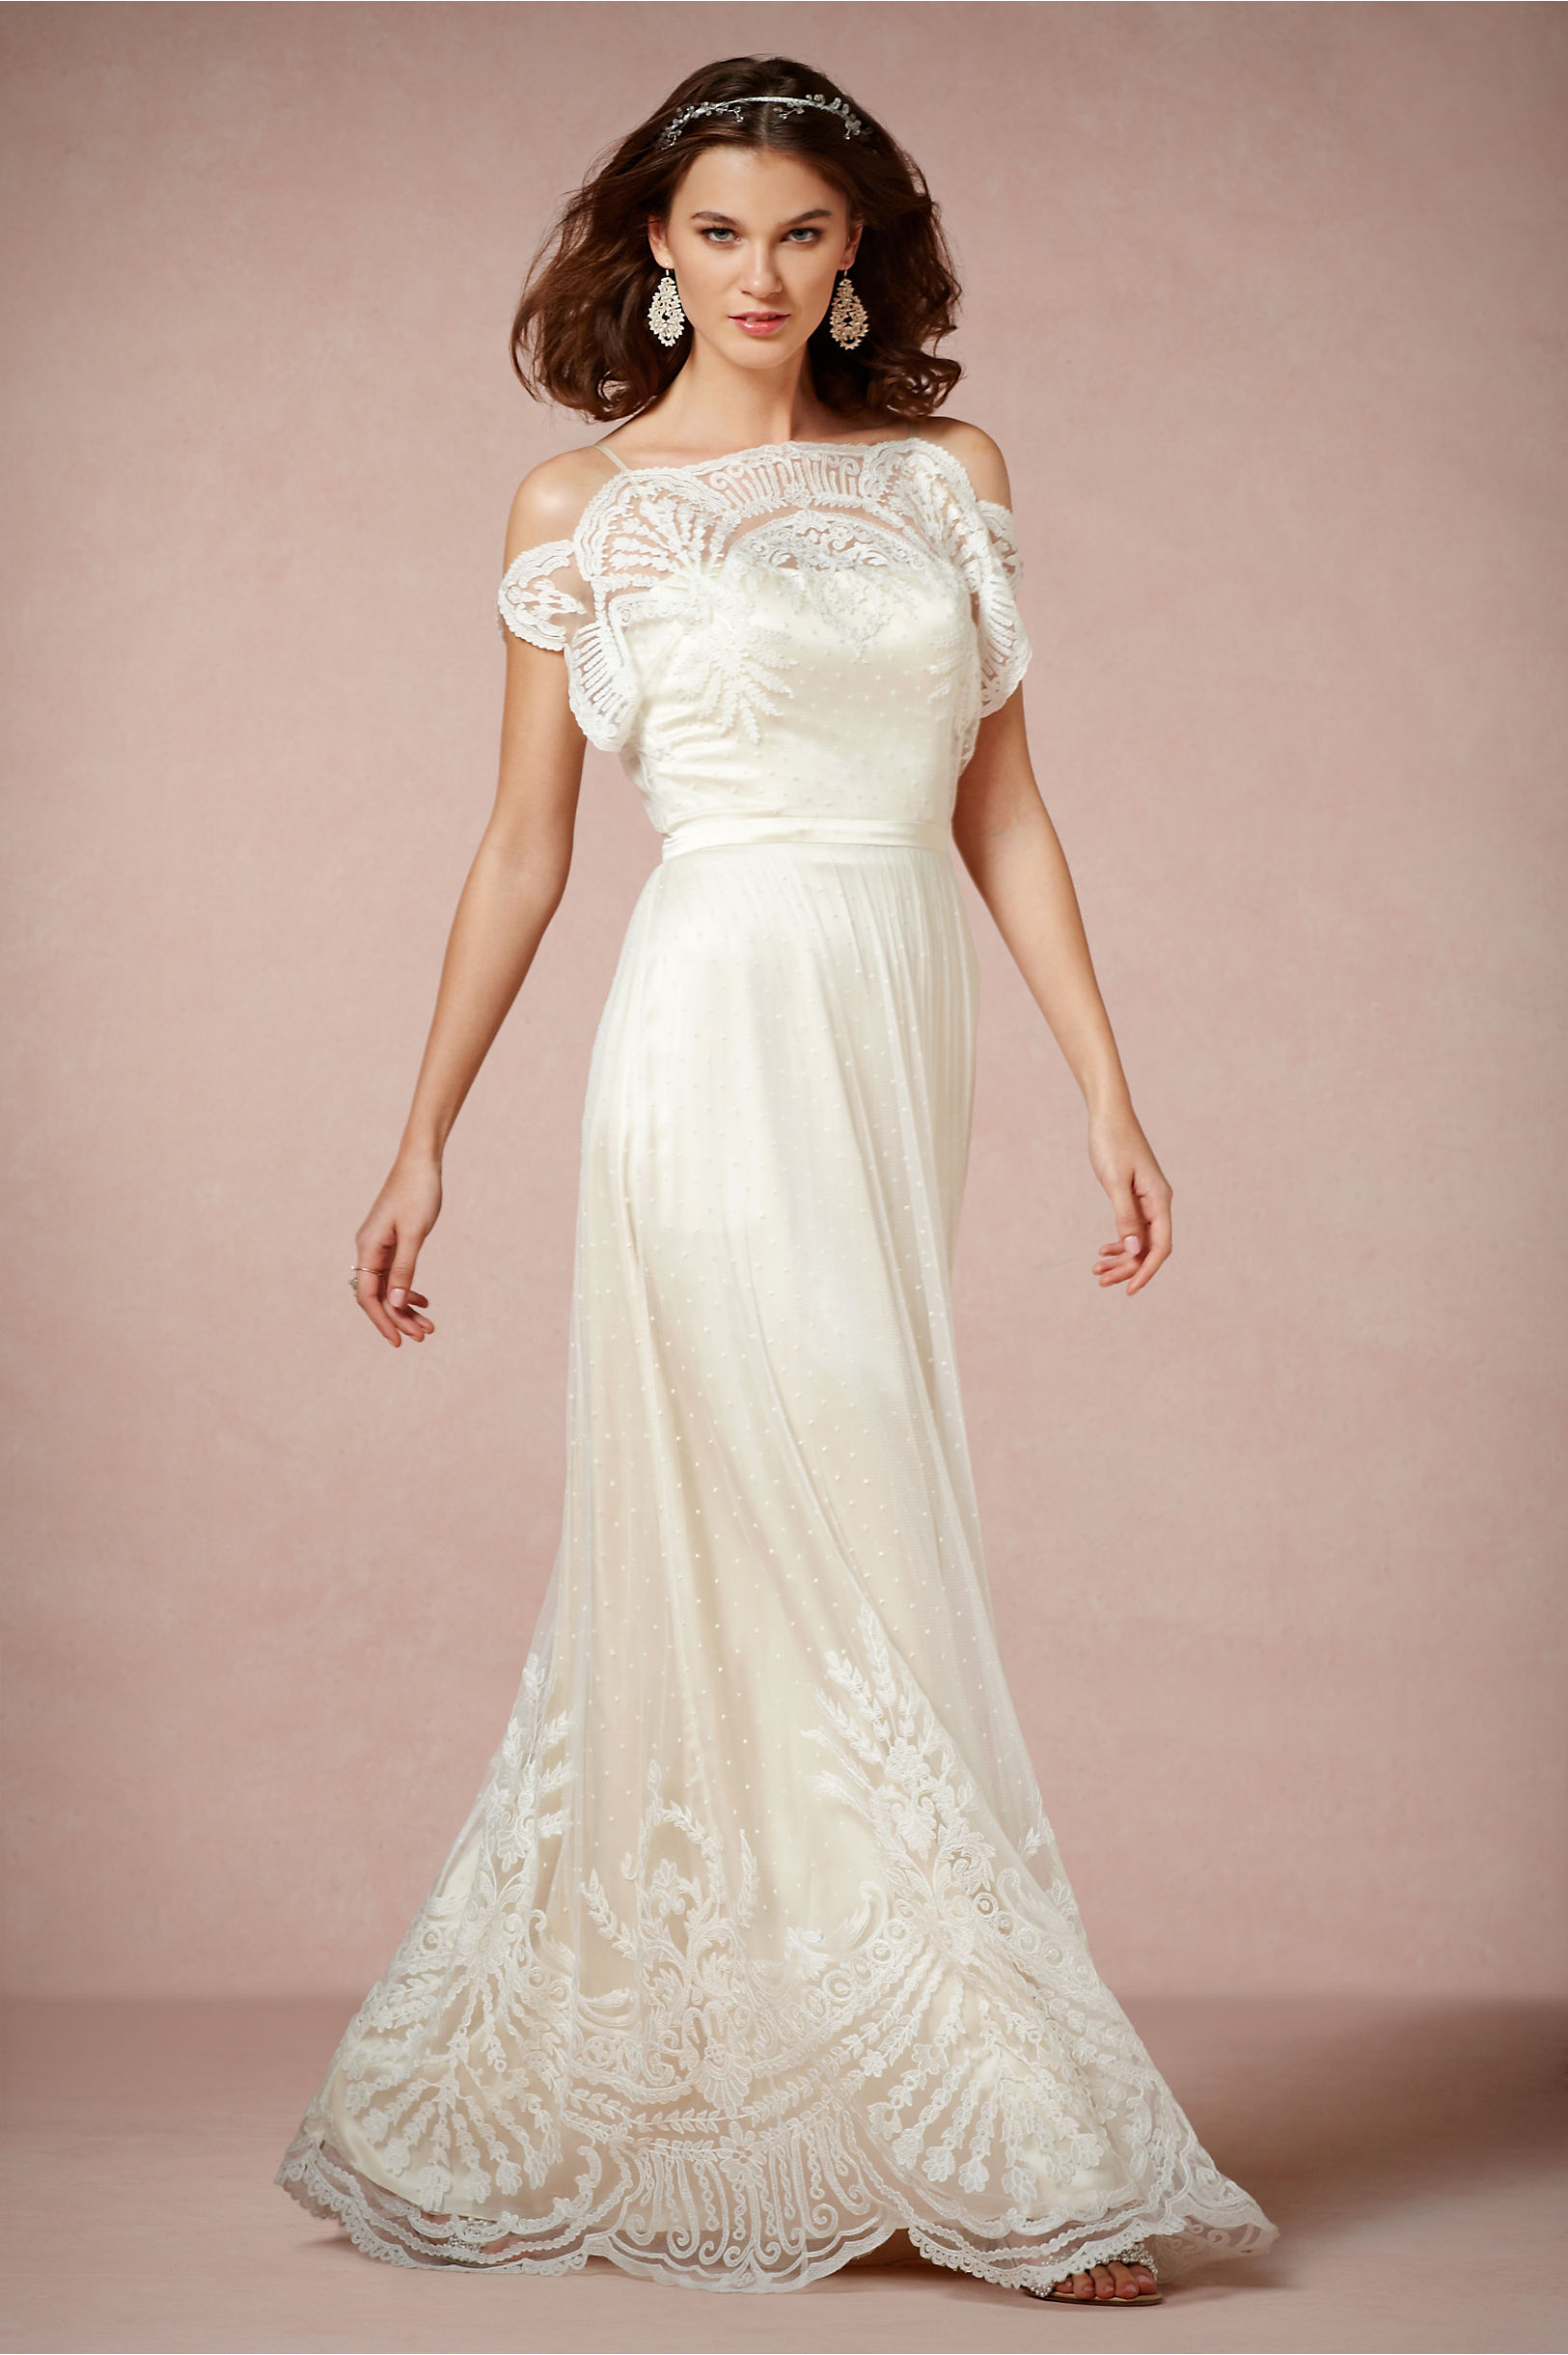 Omelia Gown in Bride | BHLDN